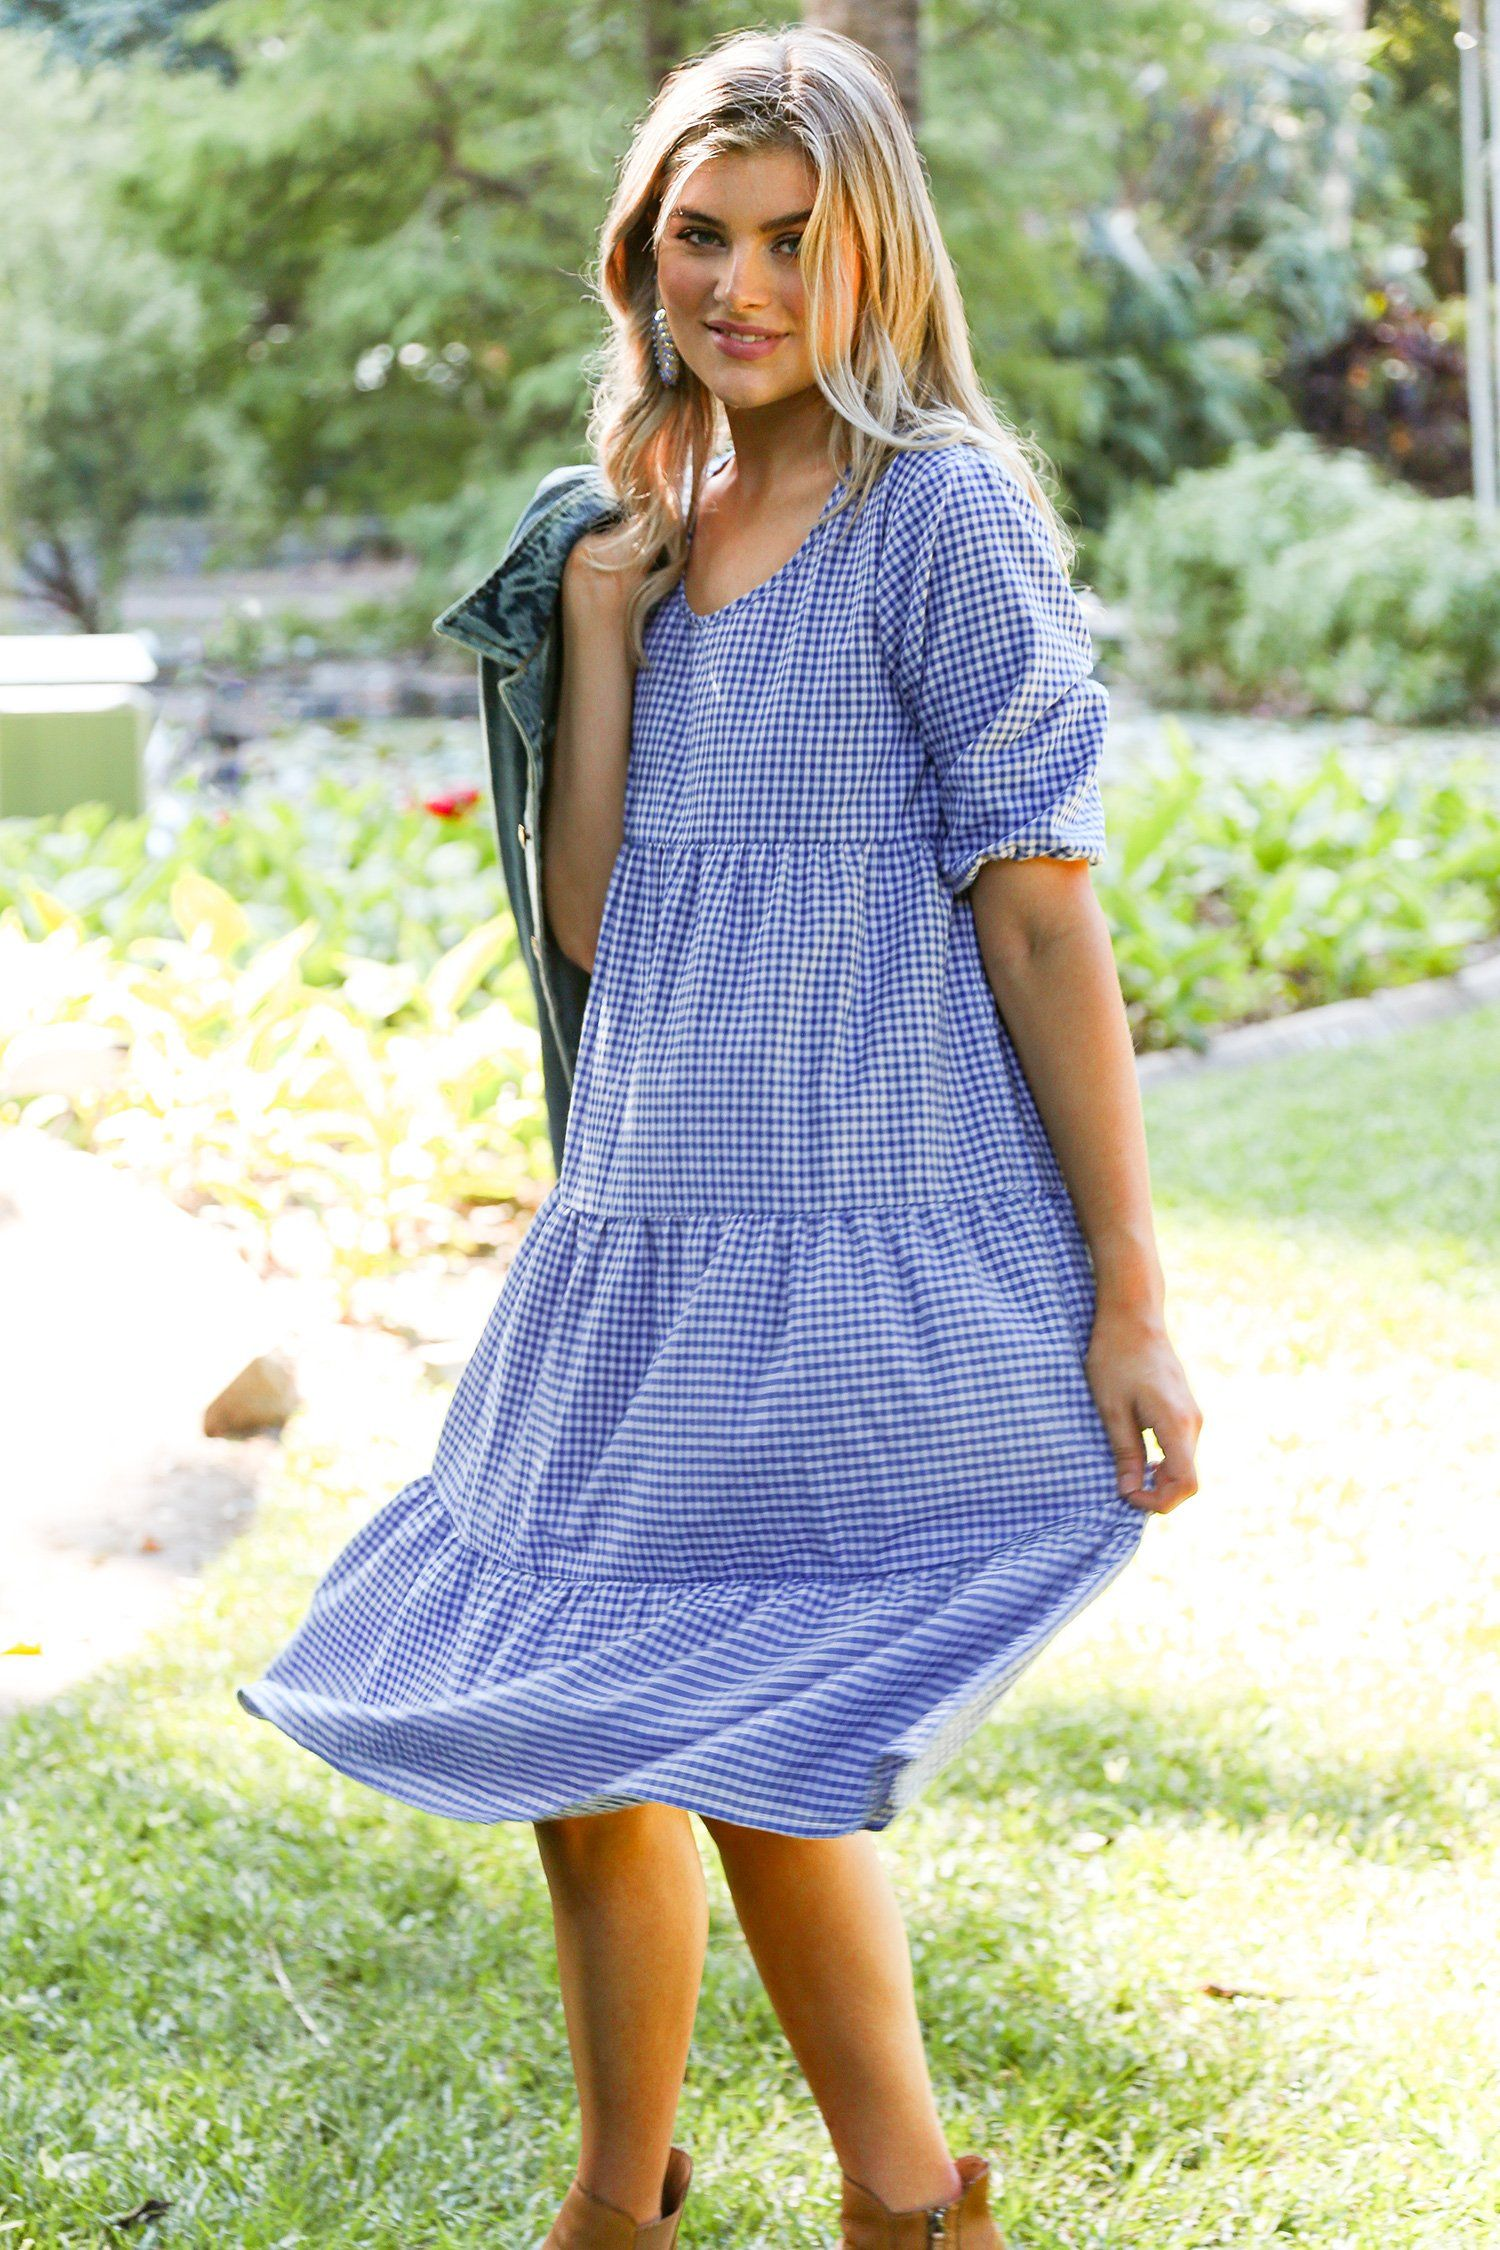 Sabre 3 4 Sleeve Dress In Blue Gingham Ad Sponsored Sleeve Sabre Dress Gingham Blue In 2020 Spring Outfits Casual Dresses With Sleeves Casual Fashion [ 2250 x 1500 Pixel ]